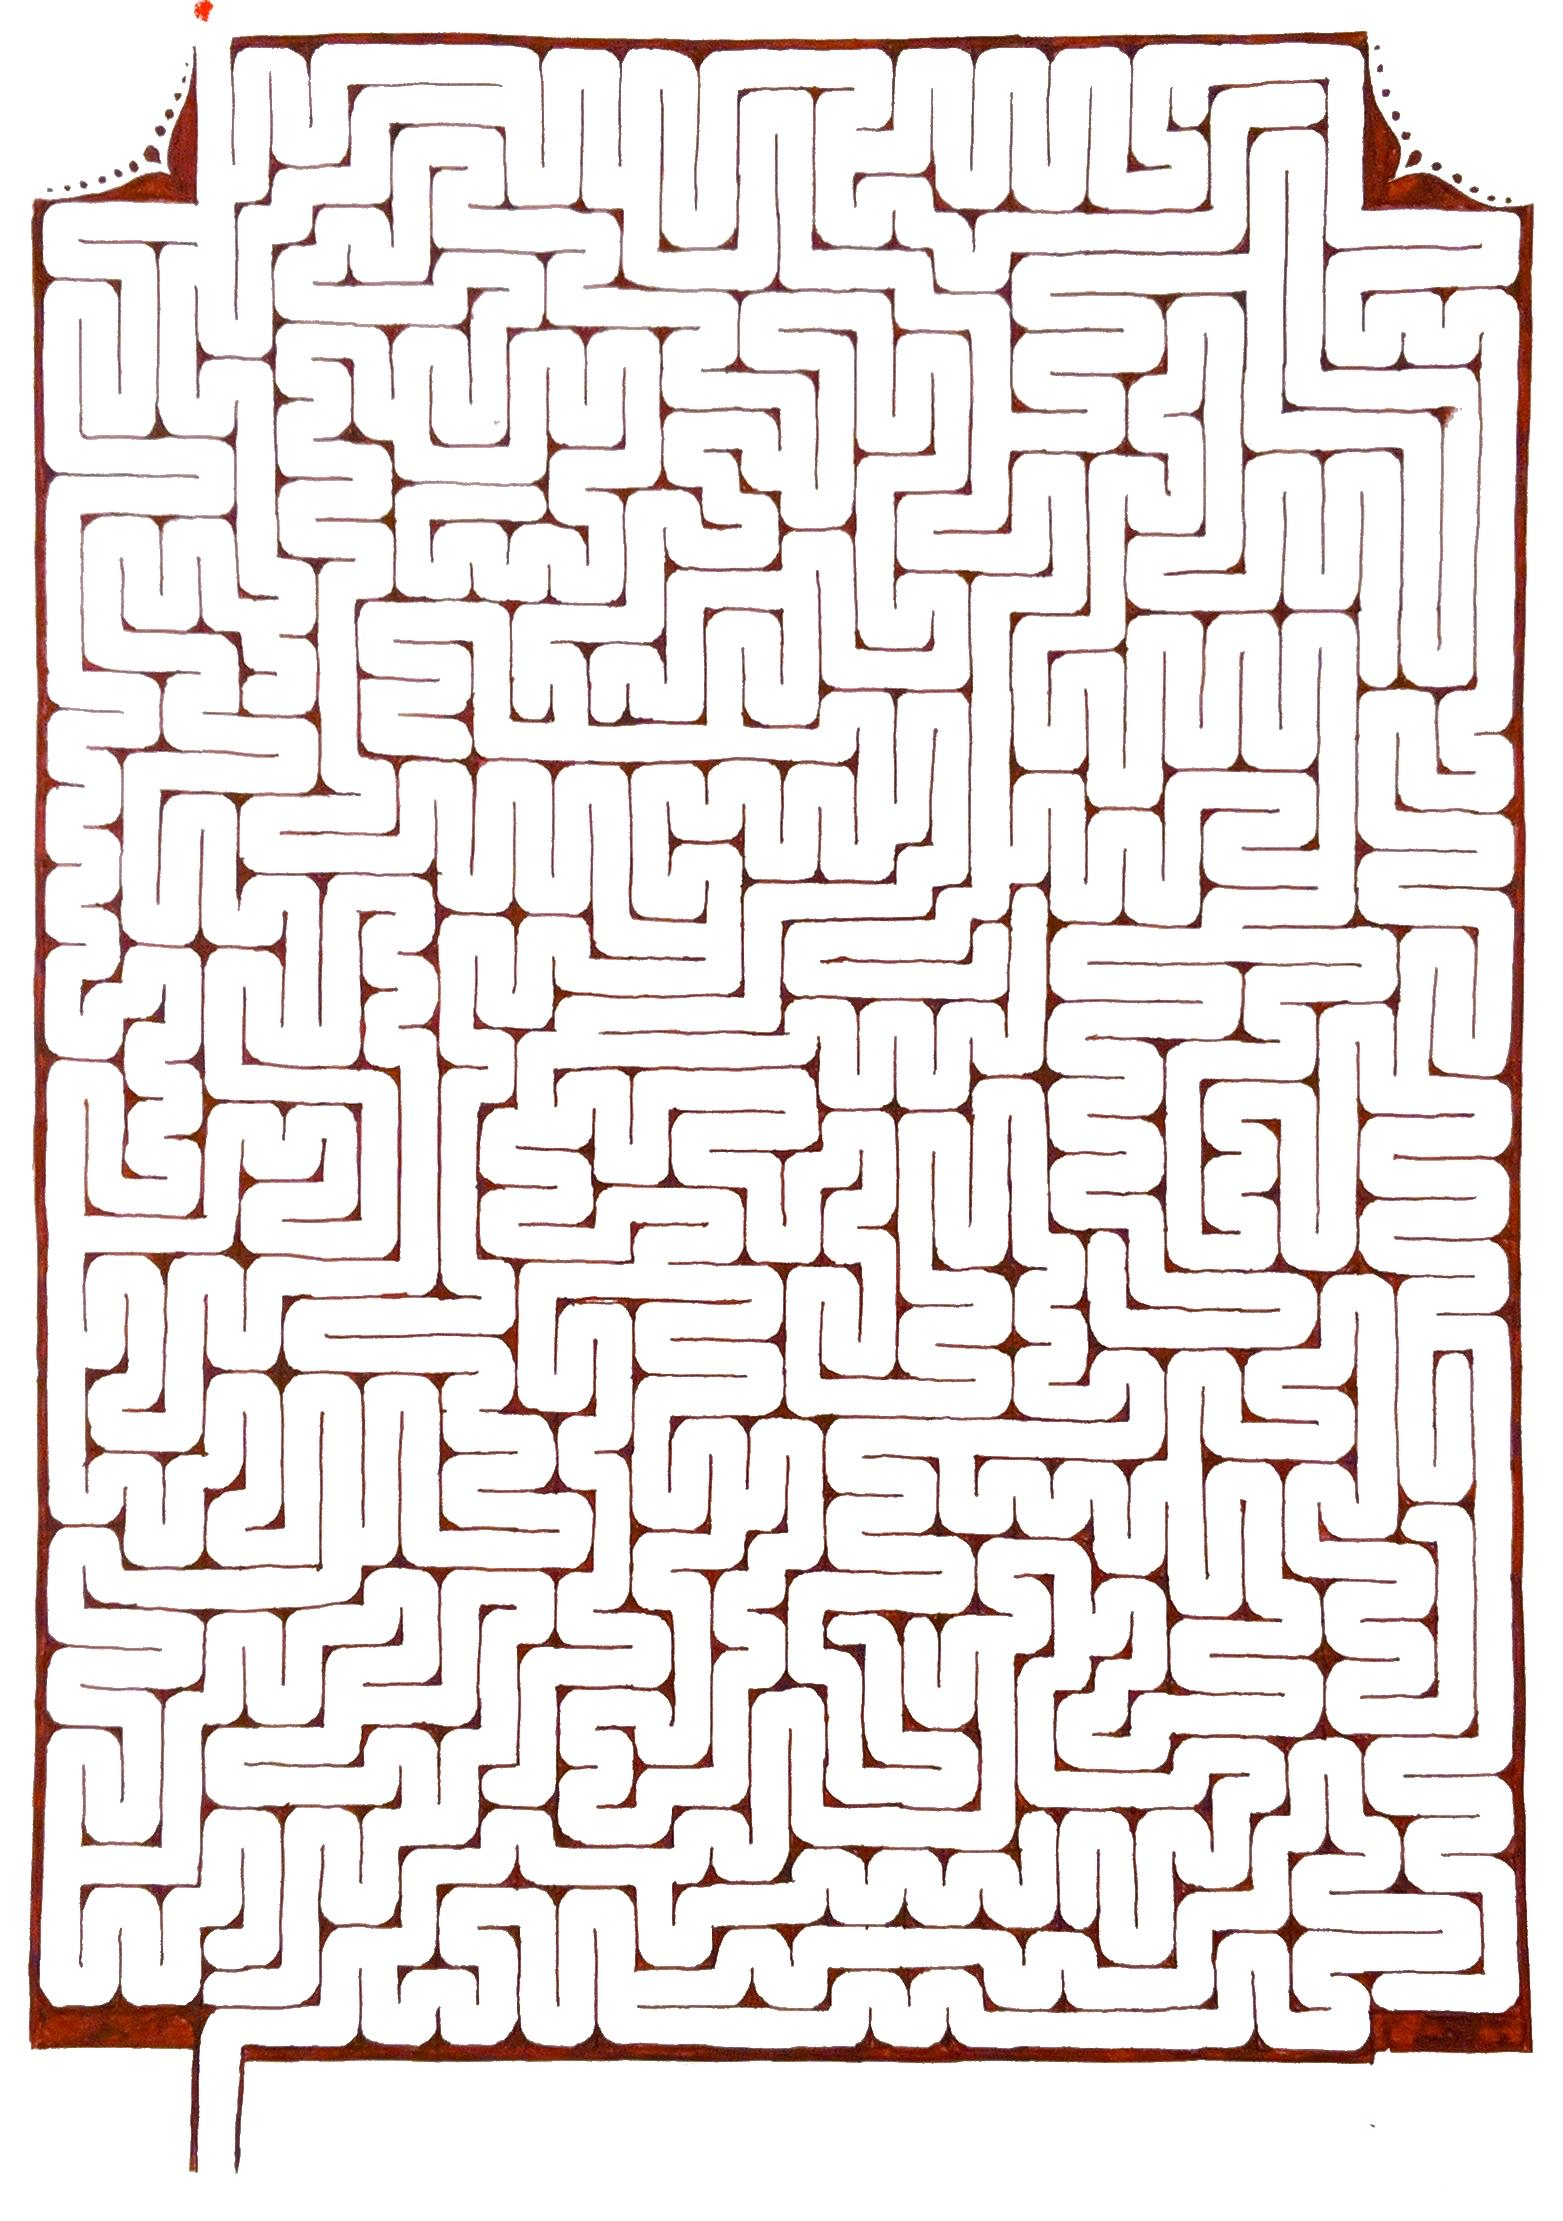 Finally Finished Another Maze Drawn With Moonman Mini